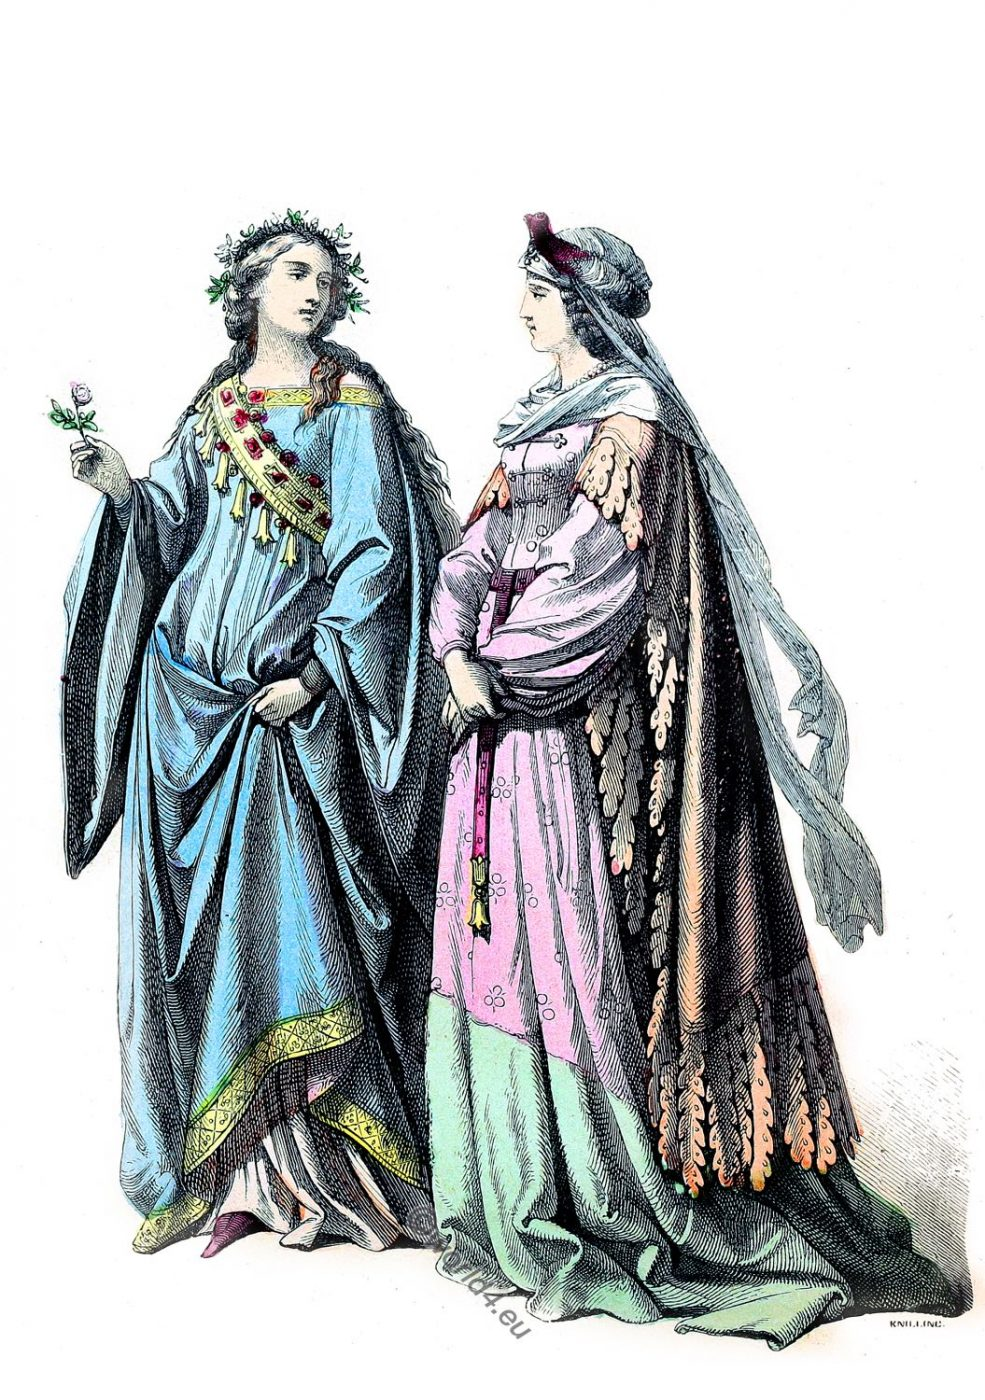 German, court, costumes,, middle ages, fashion